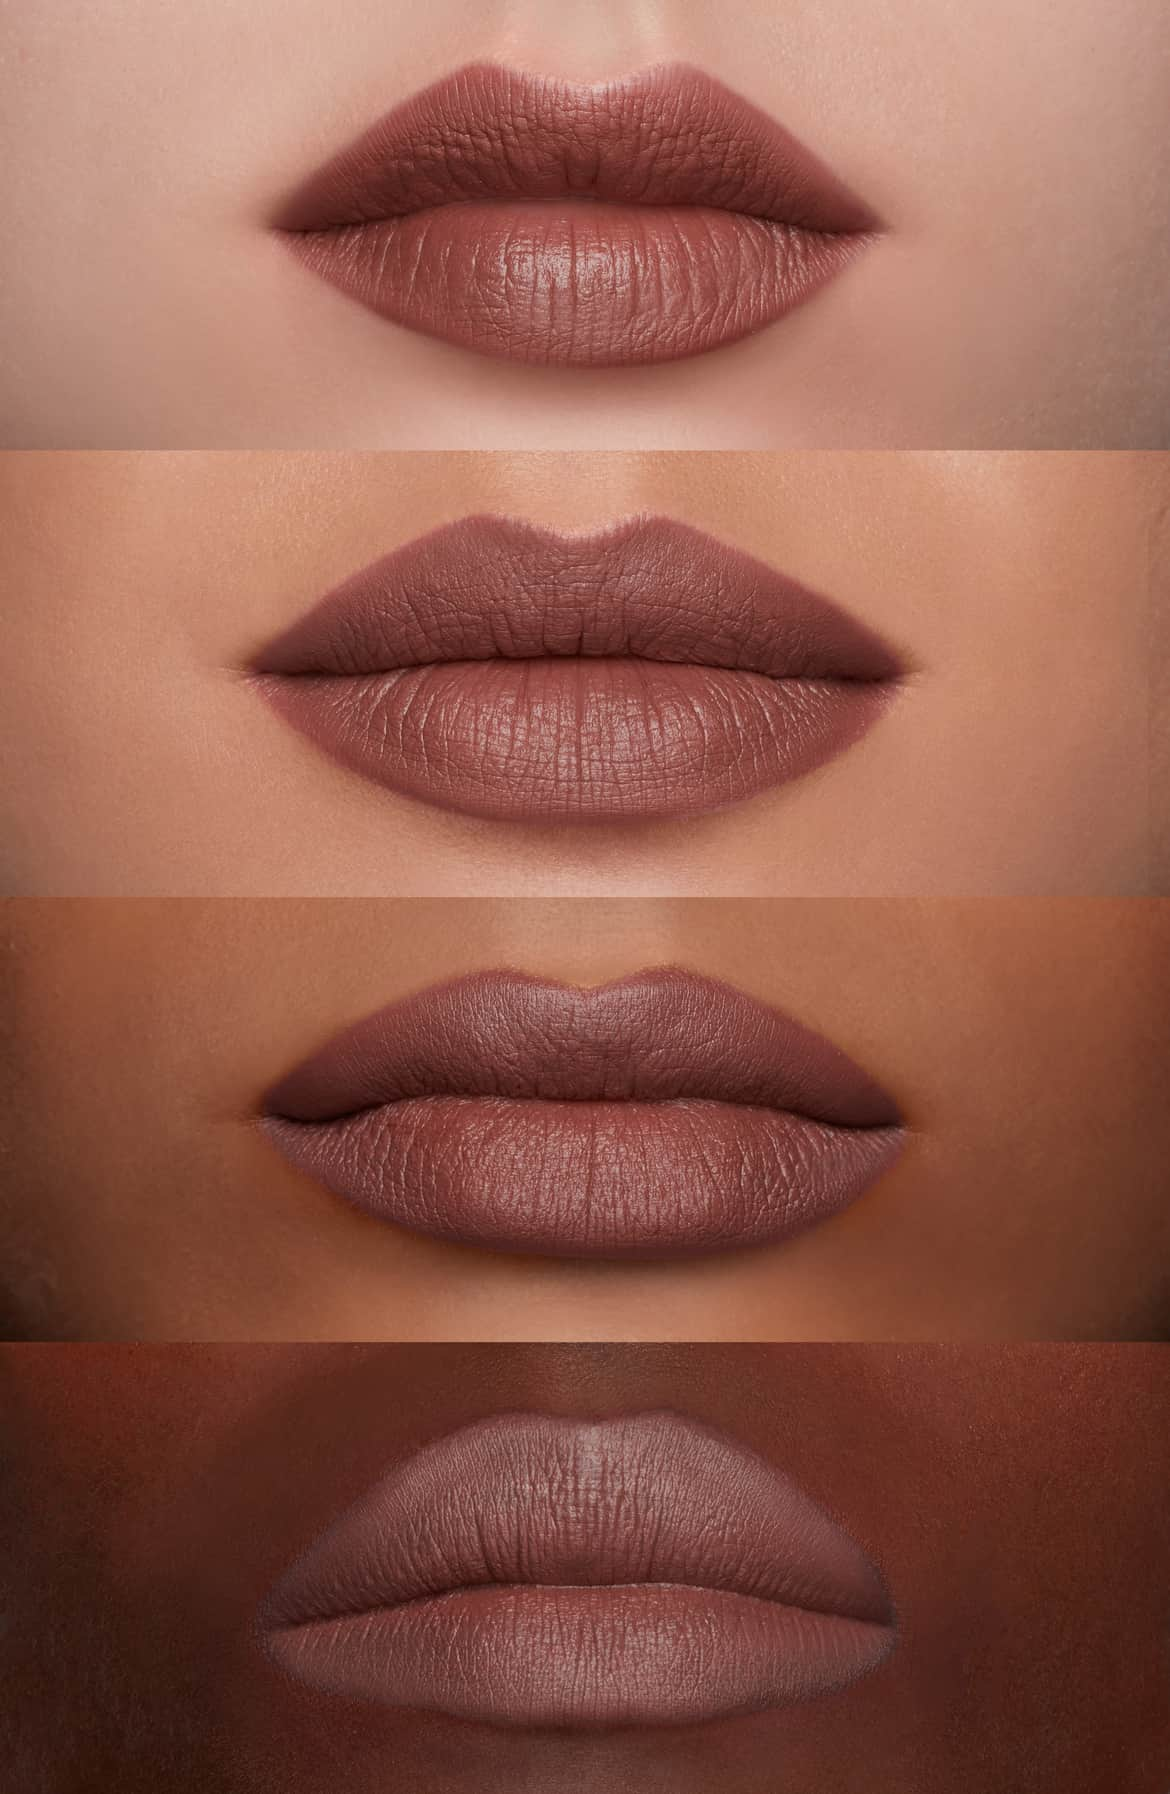 def6941a ec79 4bf3 ba09 944fb3b38e3f - How to Find a Lipstick to Look Amazing on You